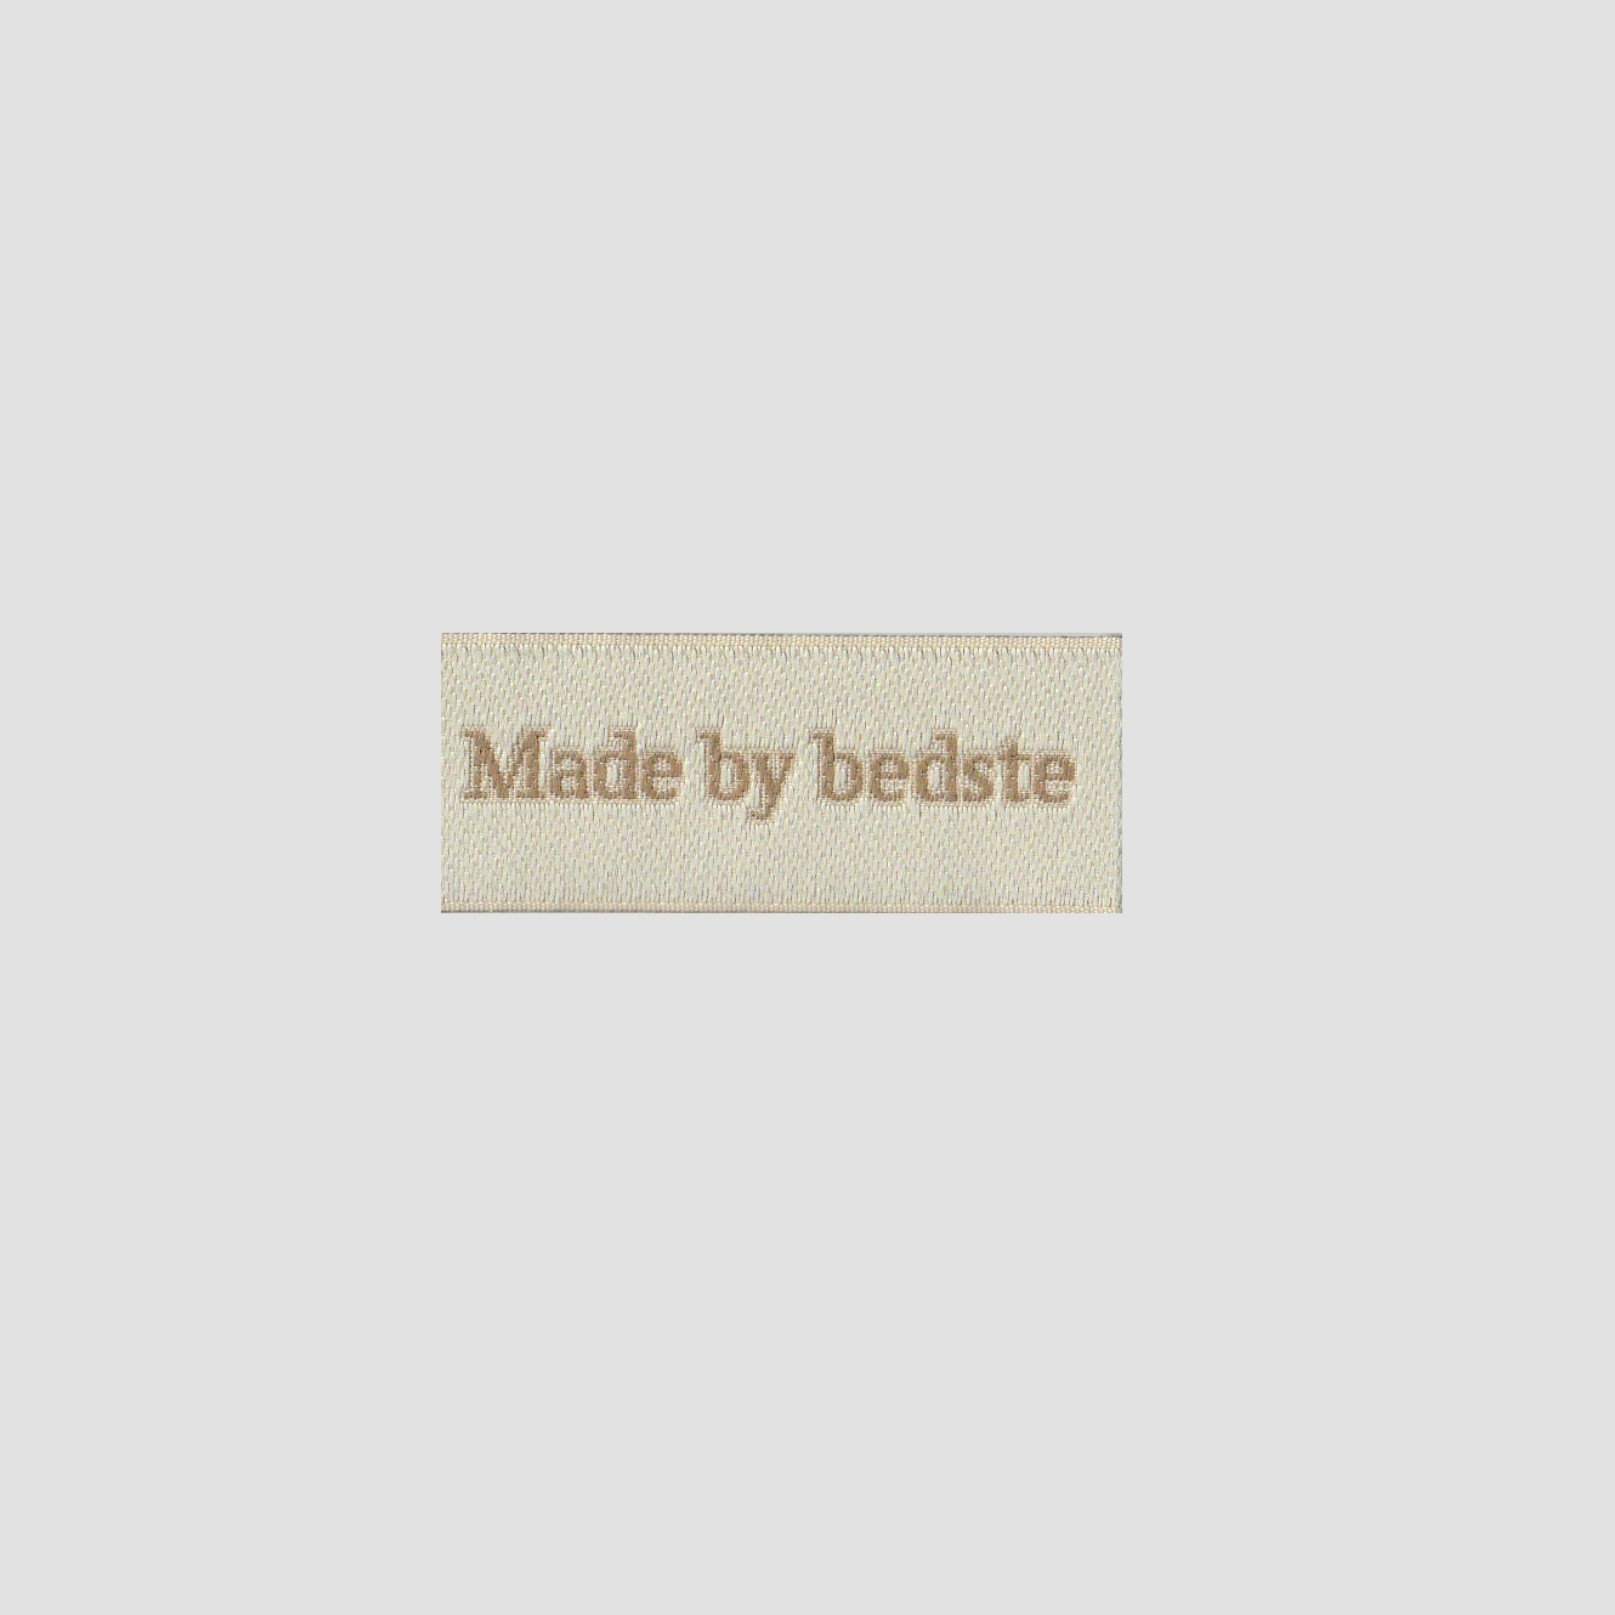 Made by bedste